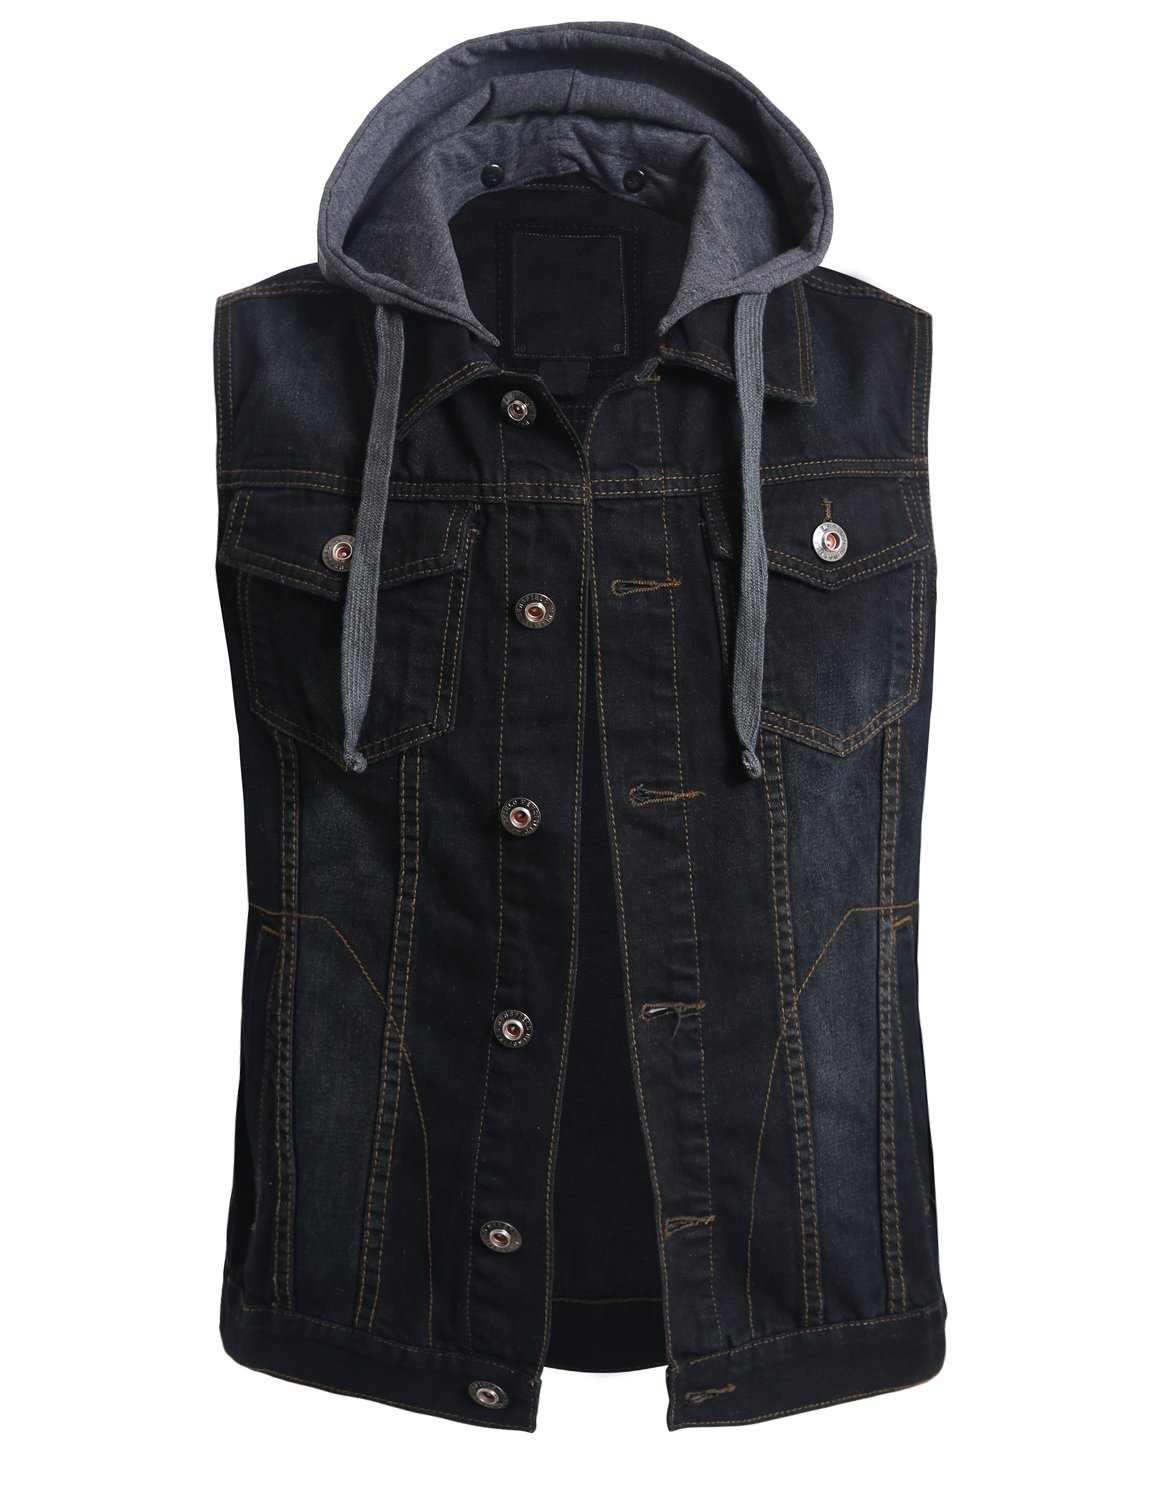 OLLIN1 Mens Casual Denim Vest Jacket with Hoodie,Olnmv424_black,Small by OLLIN1